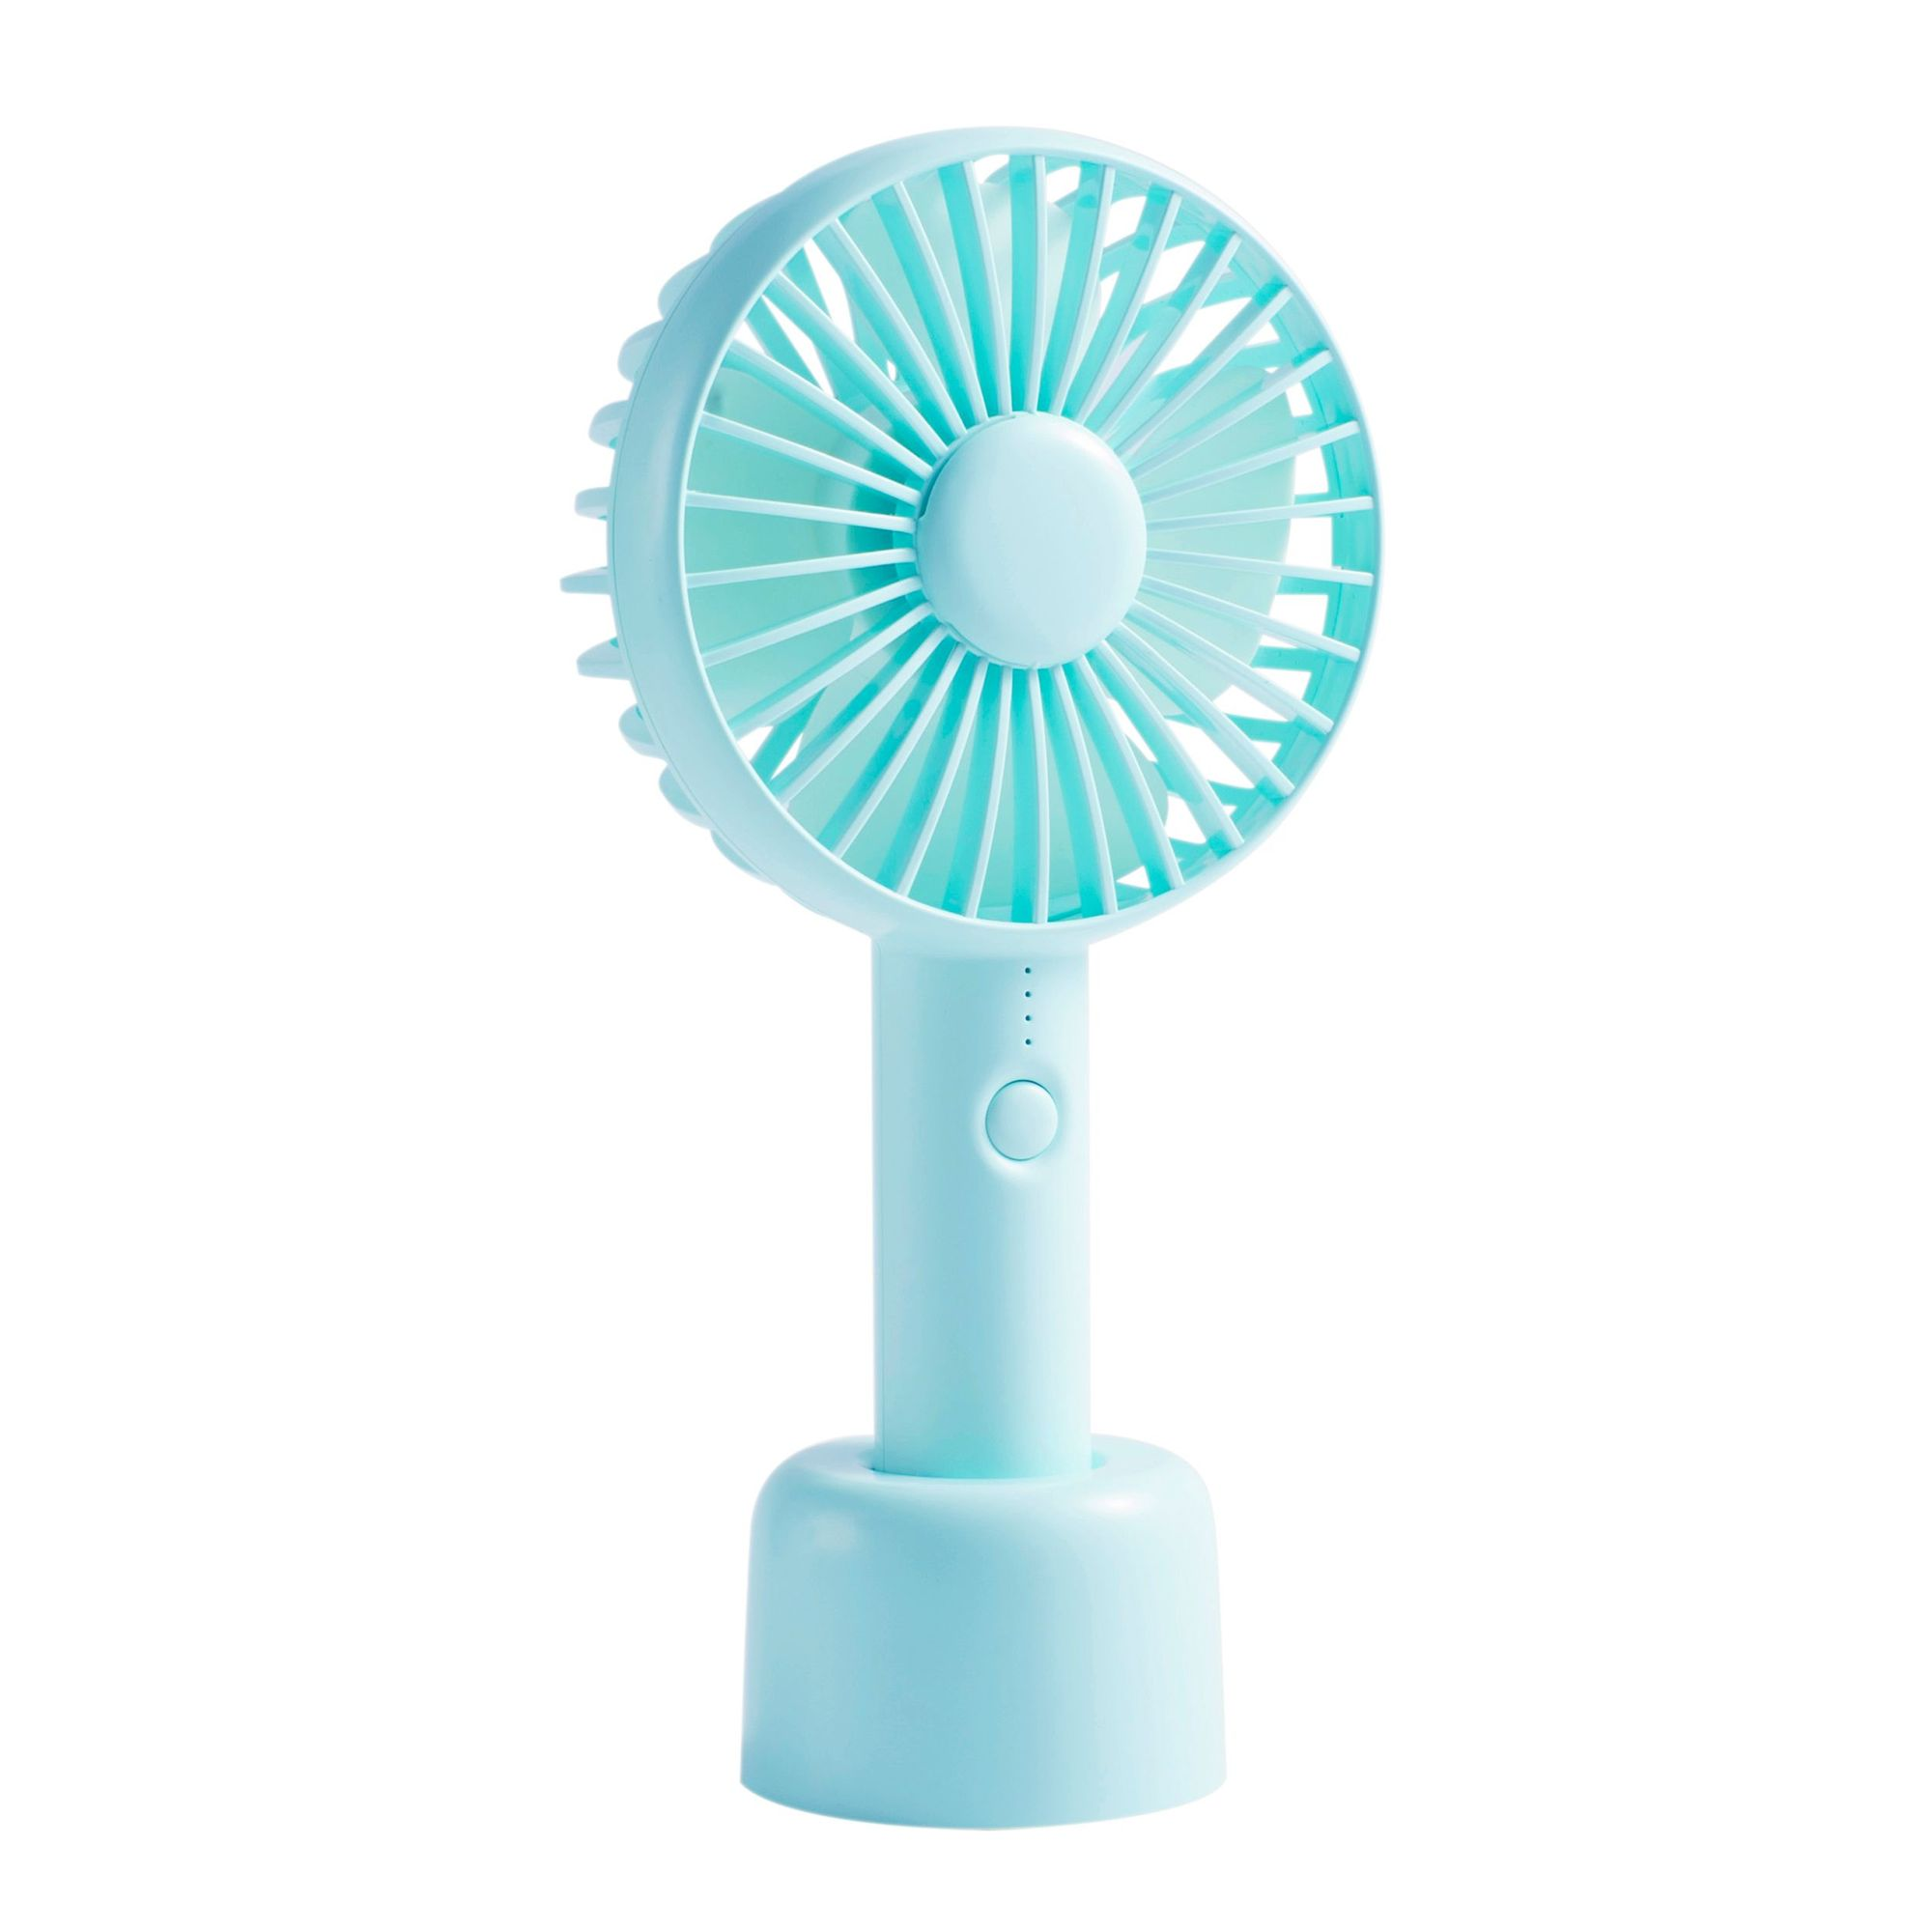 Mini Fan Handheld Mini Fan Mobile Power for Travel Camping 3 Speeds Handheld Mini Fan USB Powered for Home and Oudoor Color : Blue, Size : Free Size